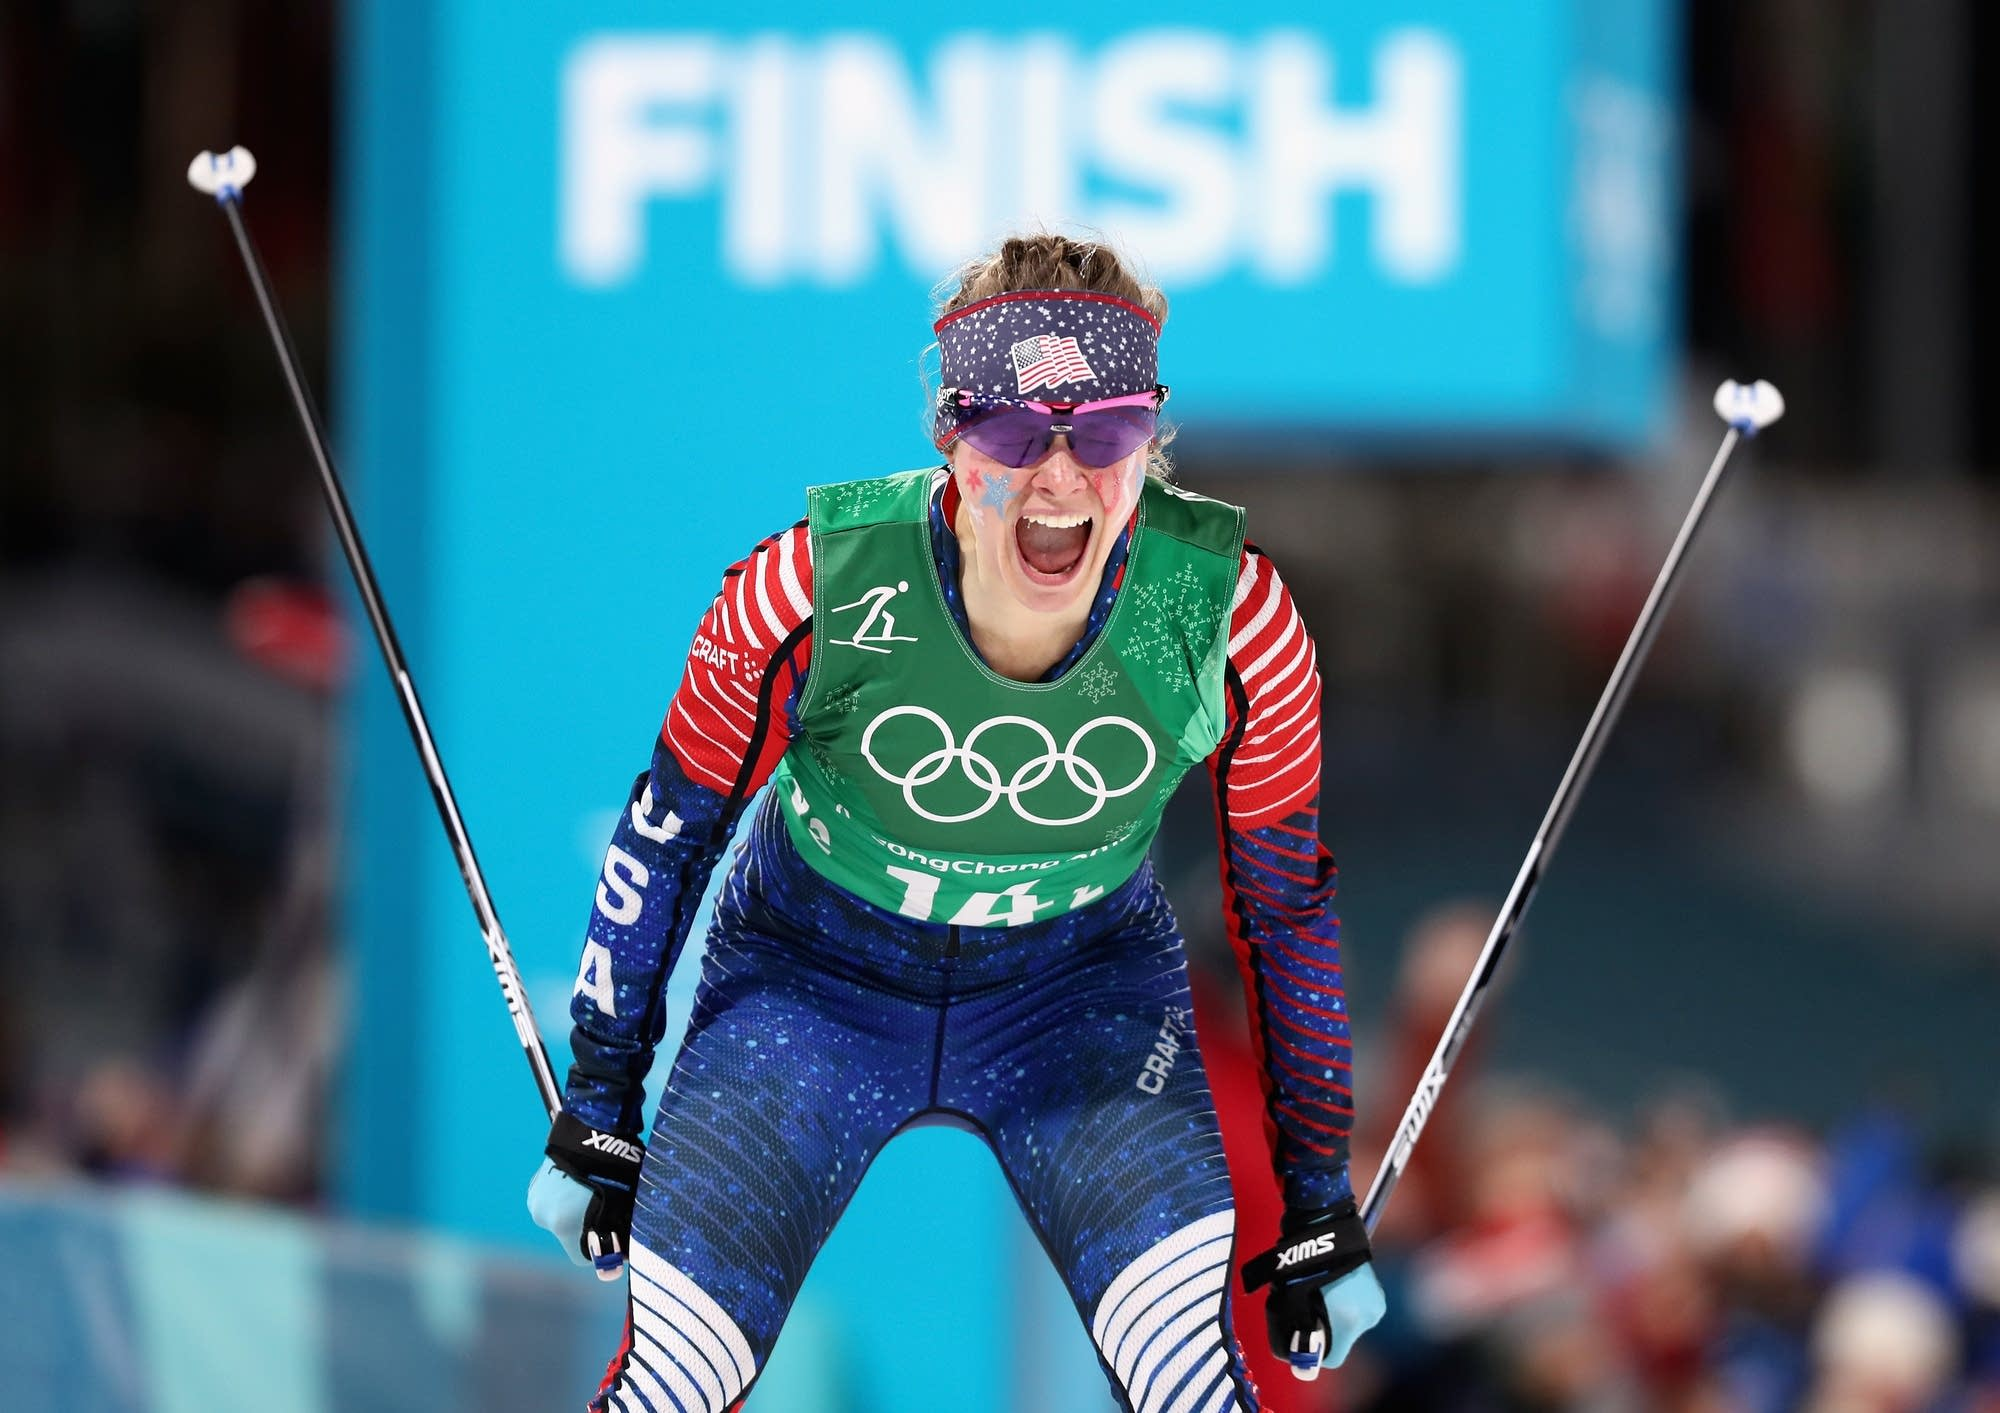 MPR News. Minneapolis to host World Cup cross-country skiing event.    Nina Moini   . September 28, 2018.